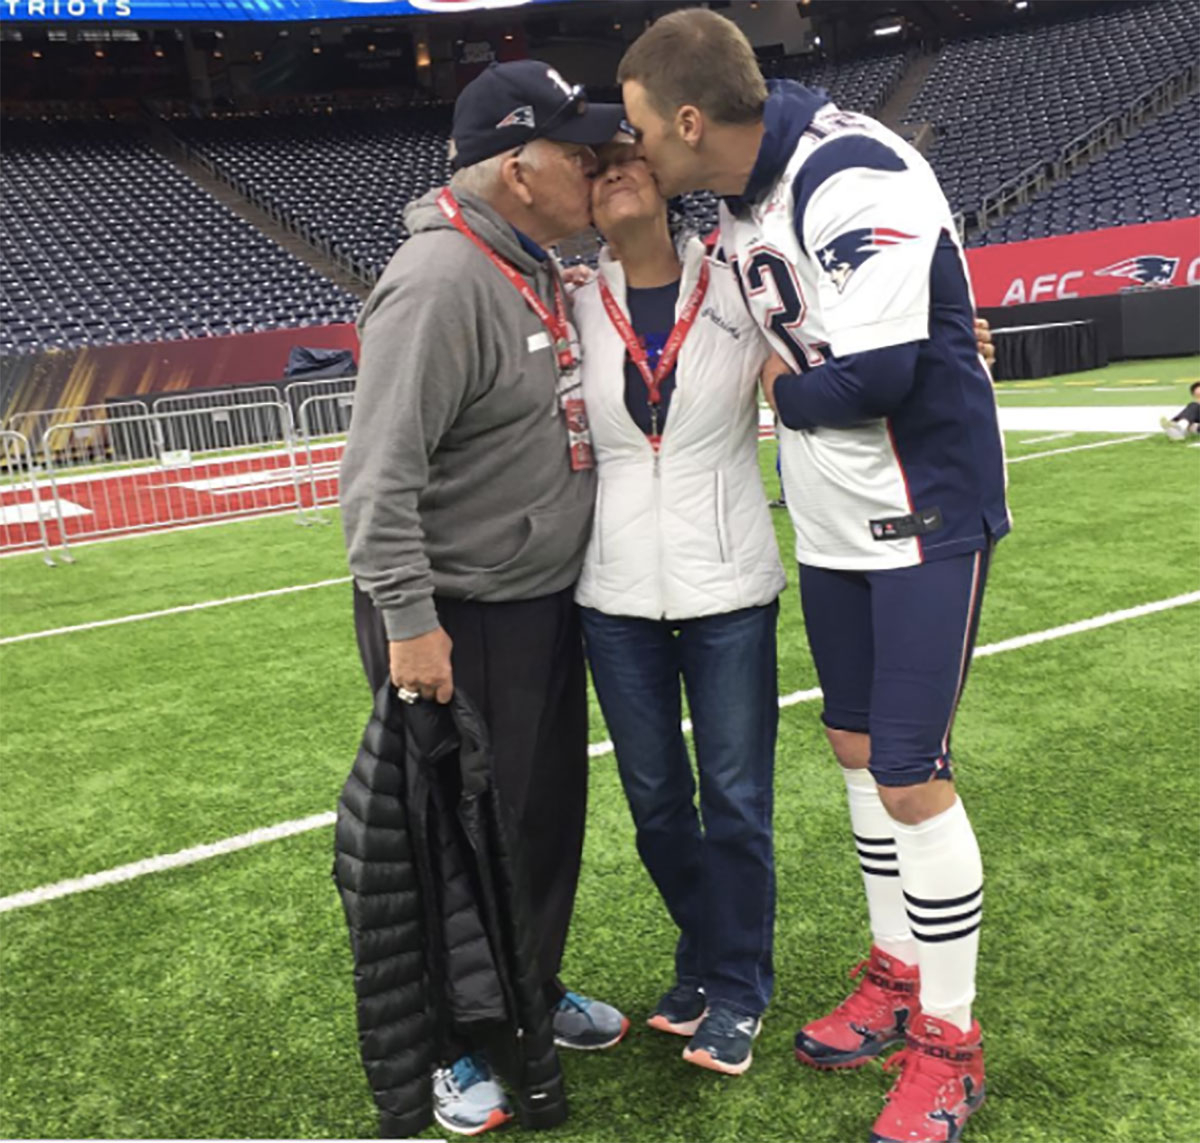 Tom Brady posted a photo to his Instagram account with his mom and dad ahead of the big Super Bowl game